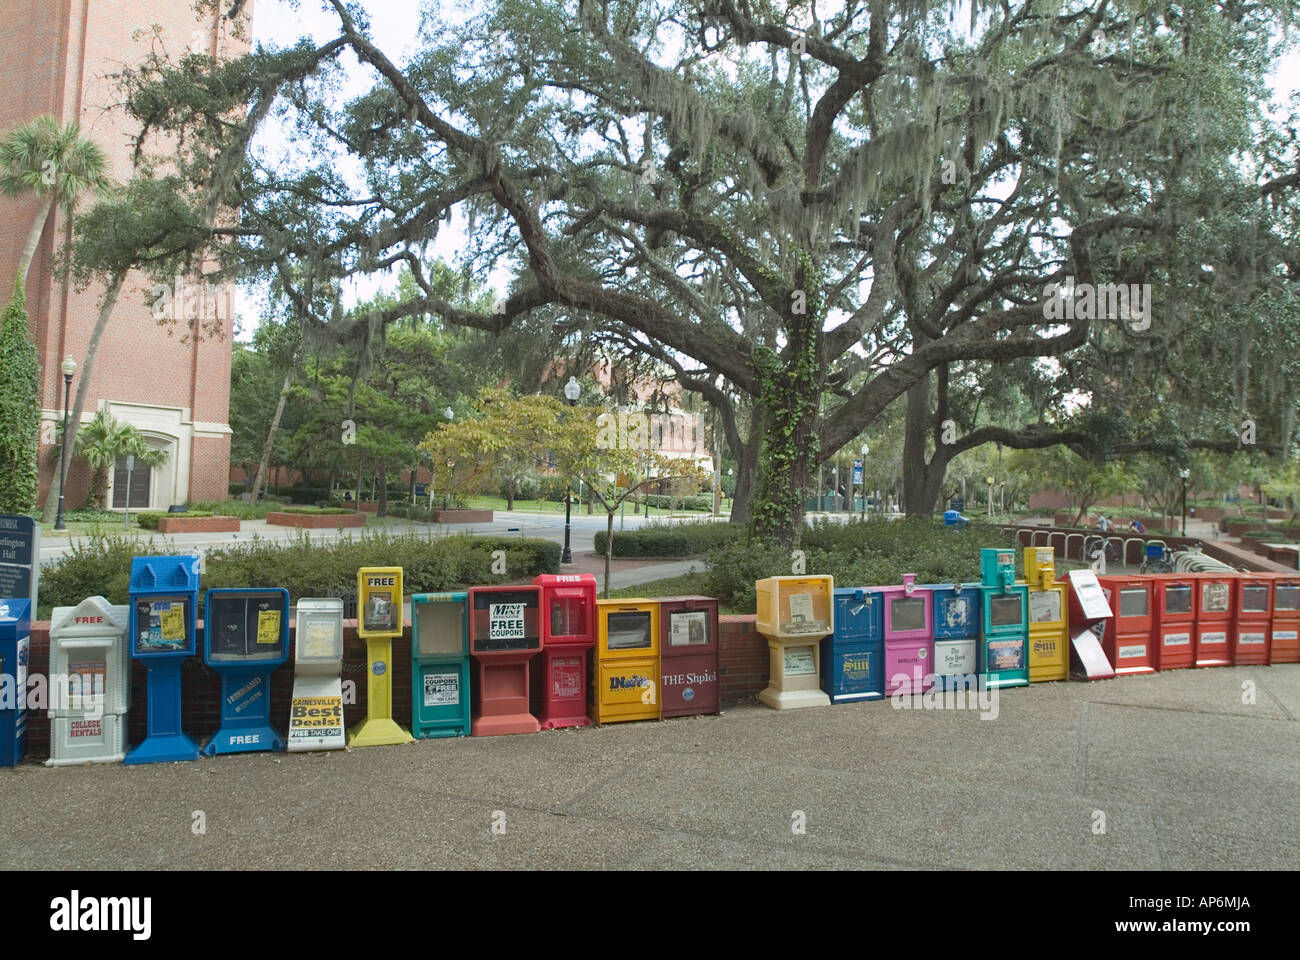 University of Florida campus Gainesville FL college school row of publication boxes newspaper boxes information - Stock Image